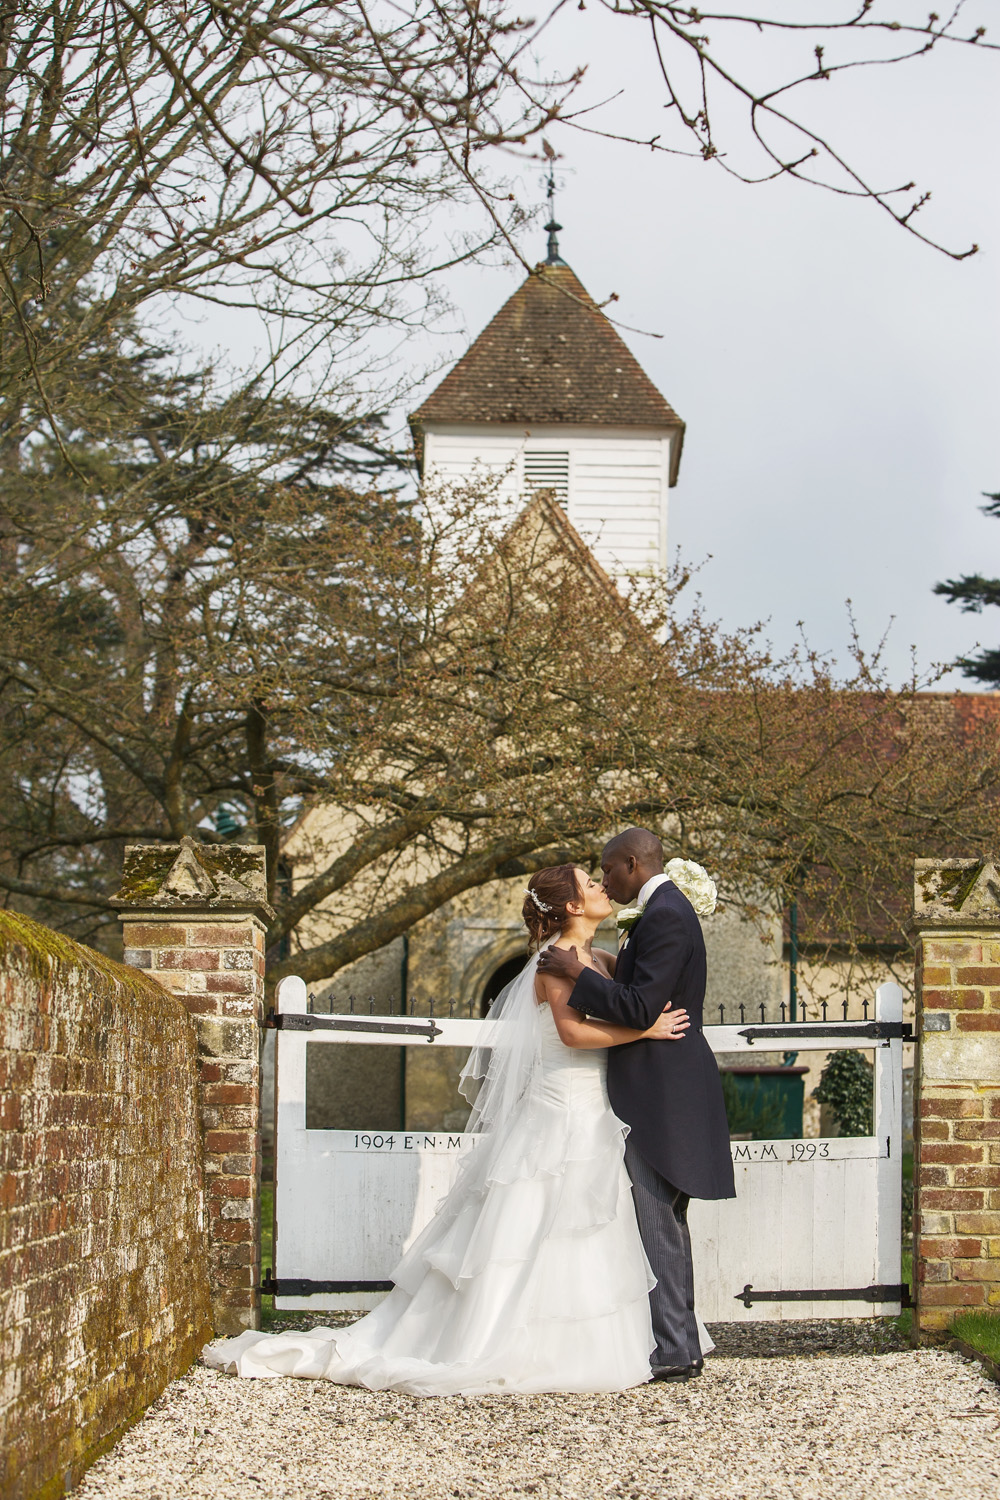 Wasing_Park_Wedding_Photographer_Reading_Berkshire_085.jpg